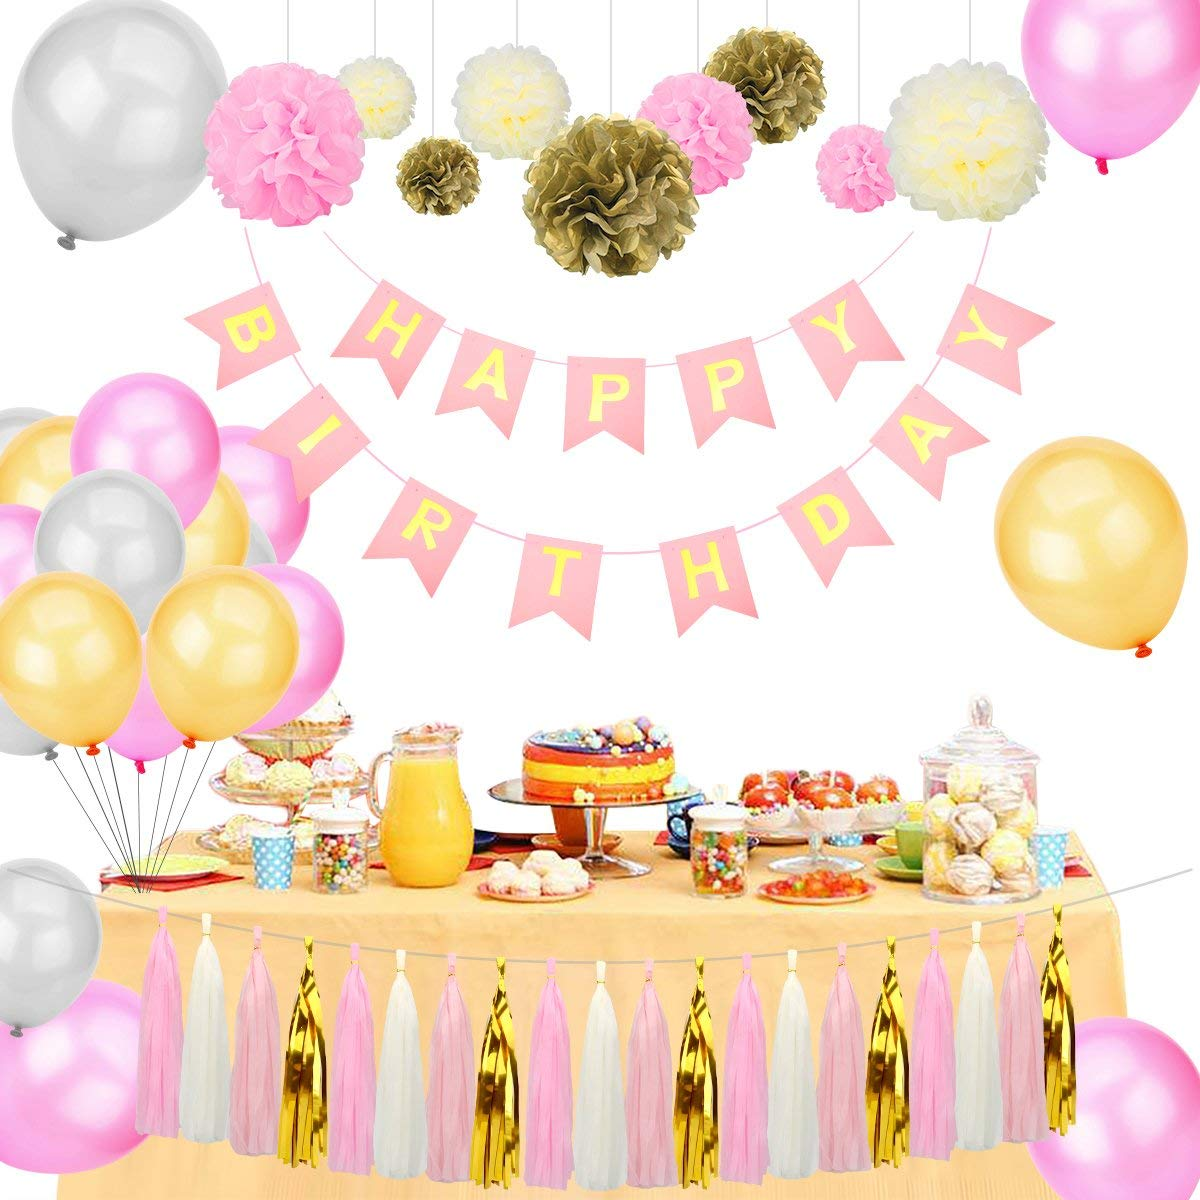 Sugoiti Birthday Party Decorations - Happy Birthday Banner Tissue Paper Flower Pom Poms Paper Tassel Balloons Pink/Gold/Ivory Party Decoration Nursery Room Decor